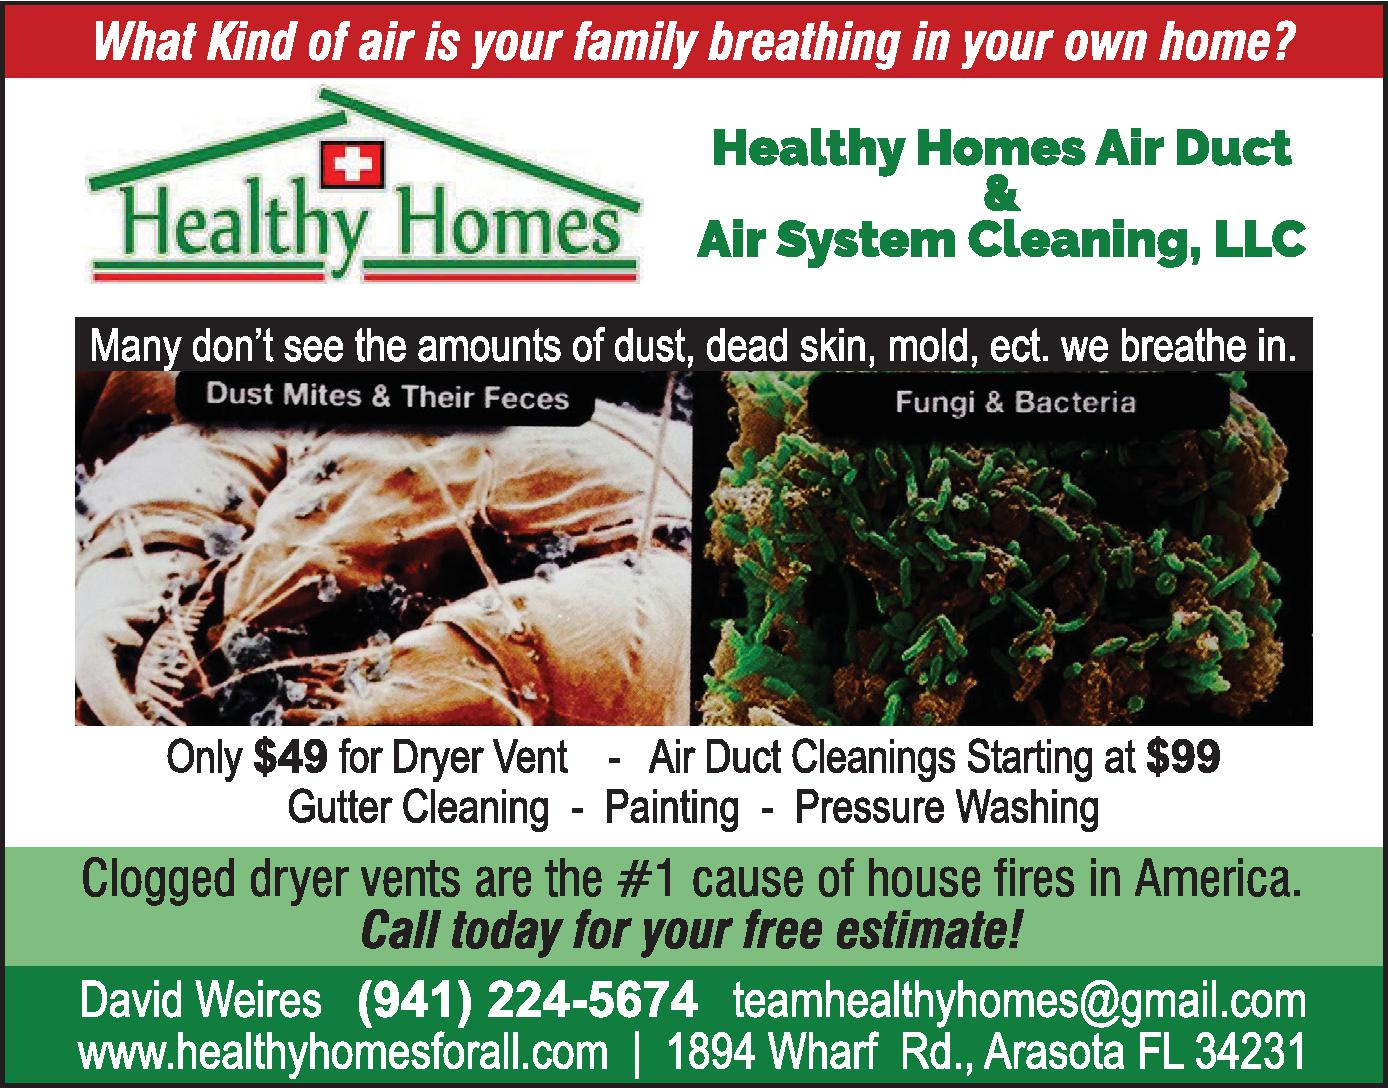 Healthy Homes Air Duct & Air System Cleaning, LLC